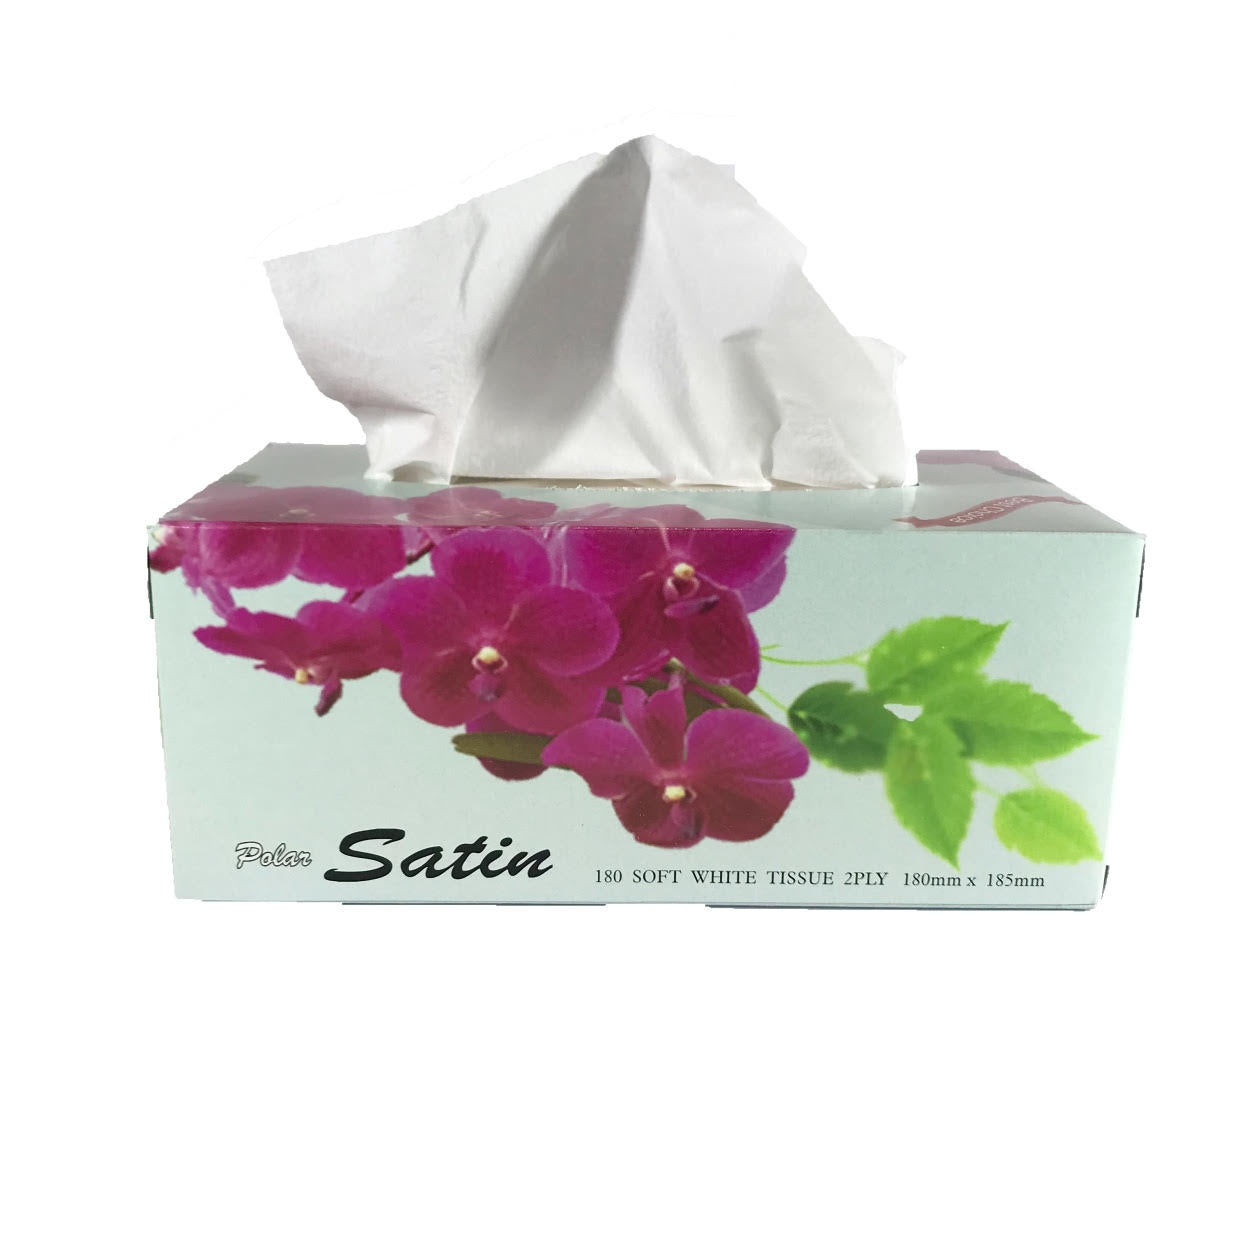 Sunrise Tissues 2ply 180mm x 180mm : 180 pieces per pack